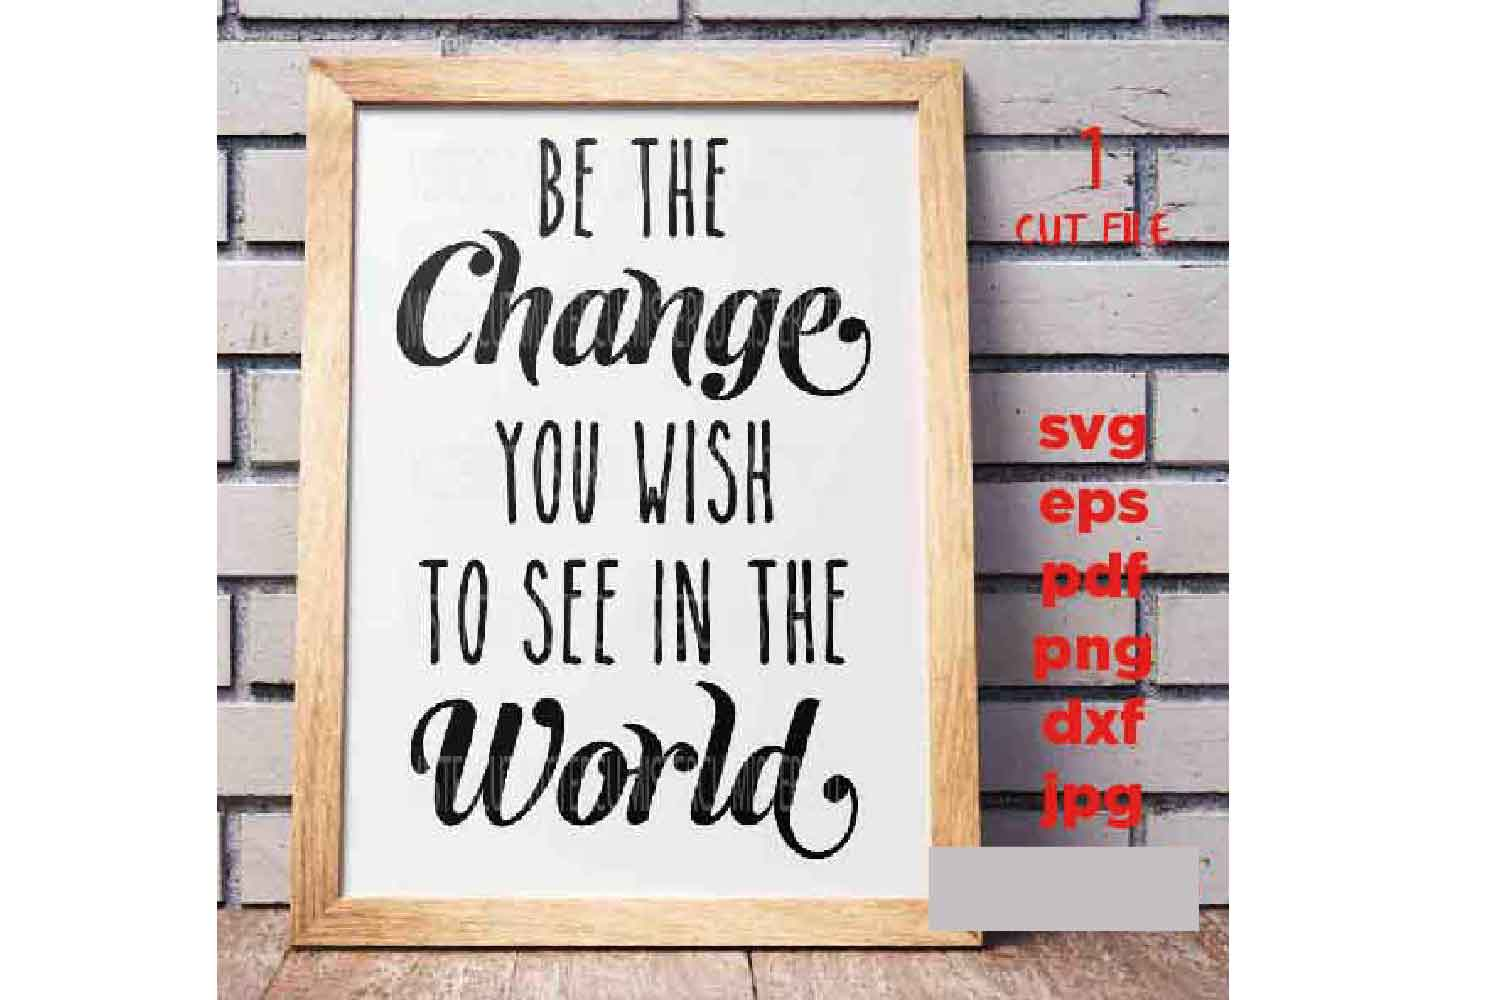 Be the Change you wish to see in the world svg, dxf, jpg mir example image 2